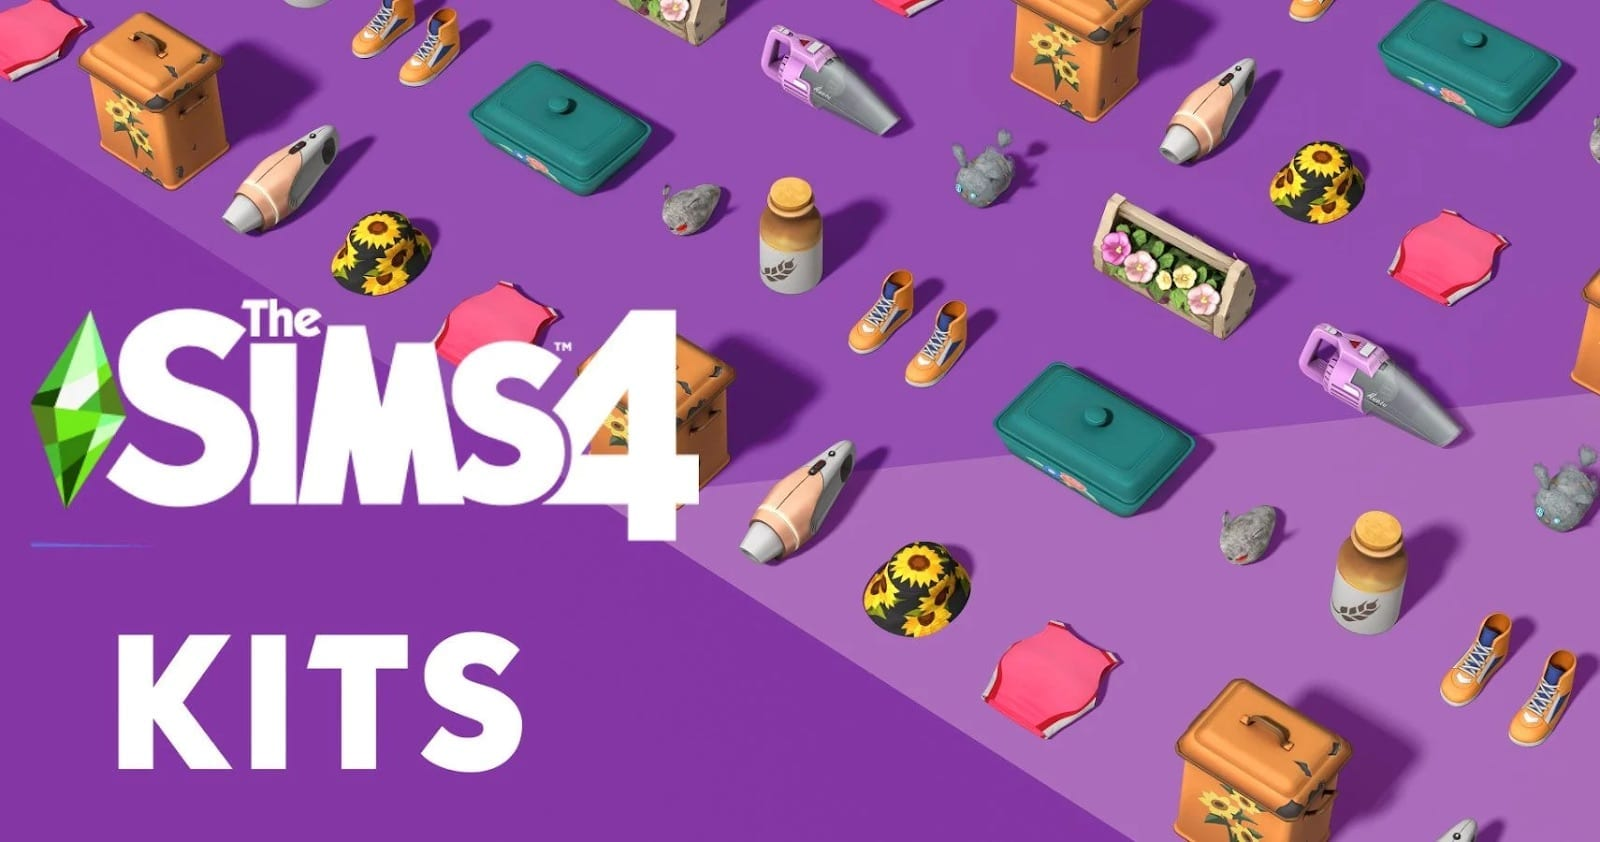 The Sims 4 Kits: Who, What & Why?